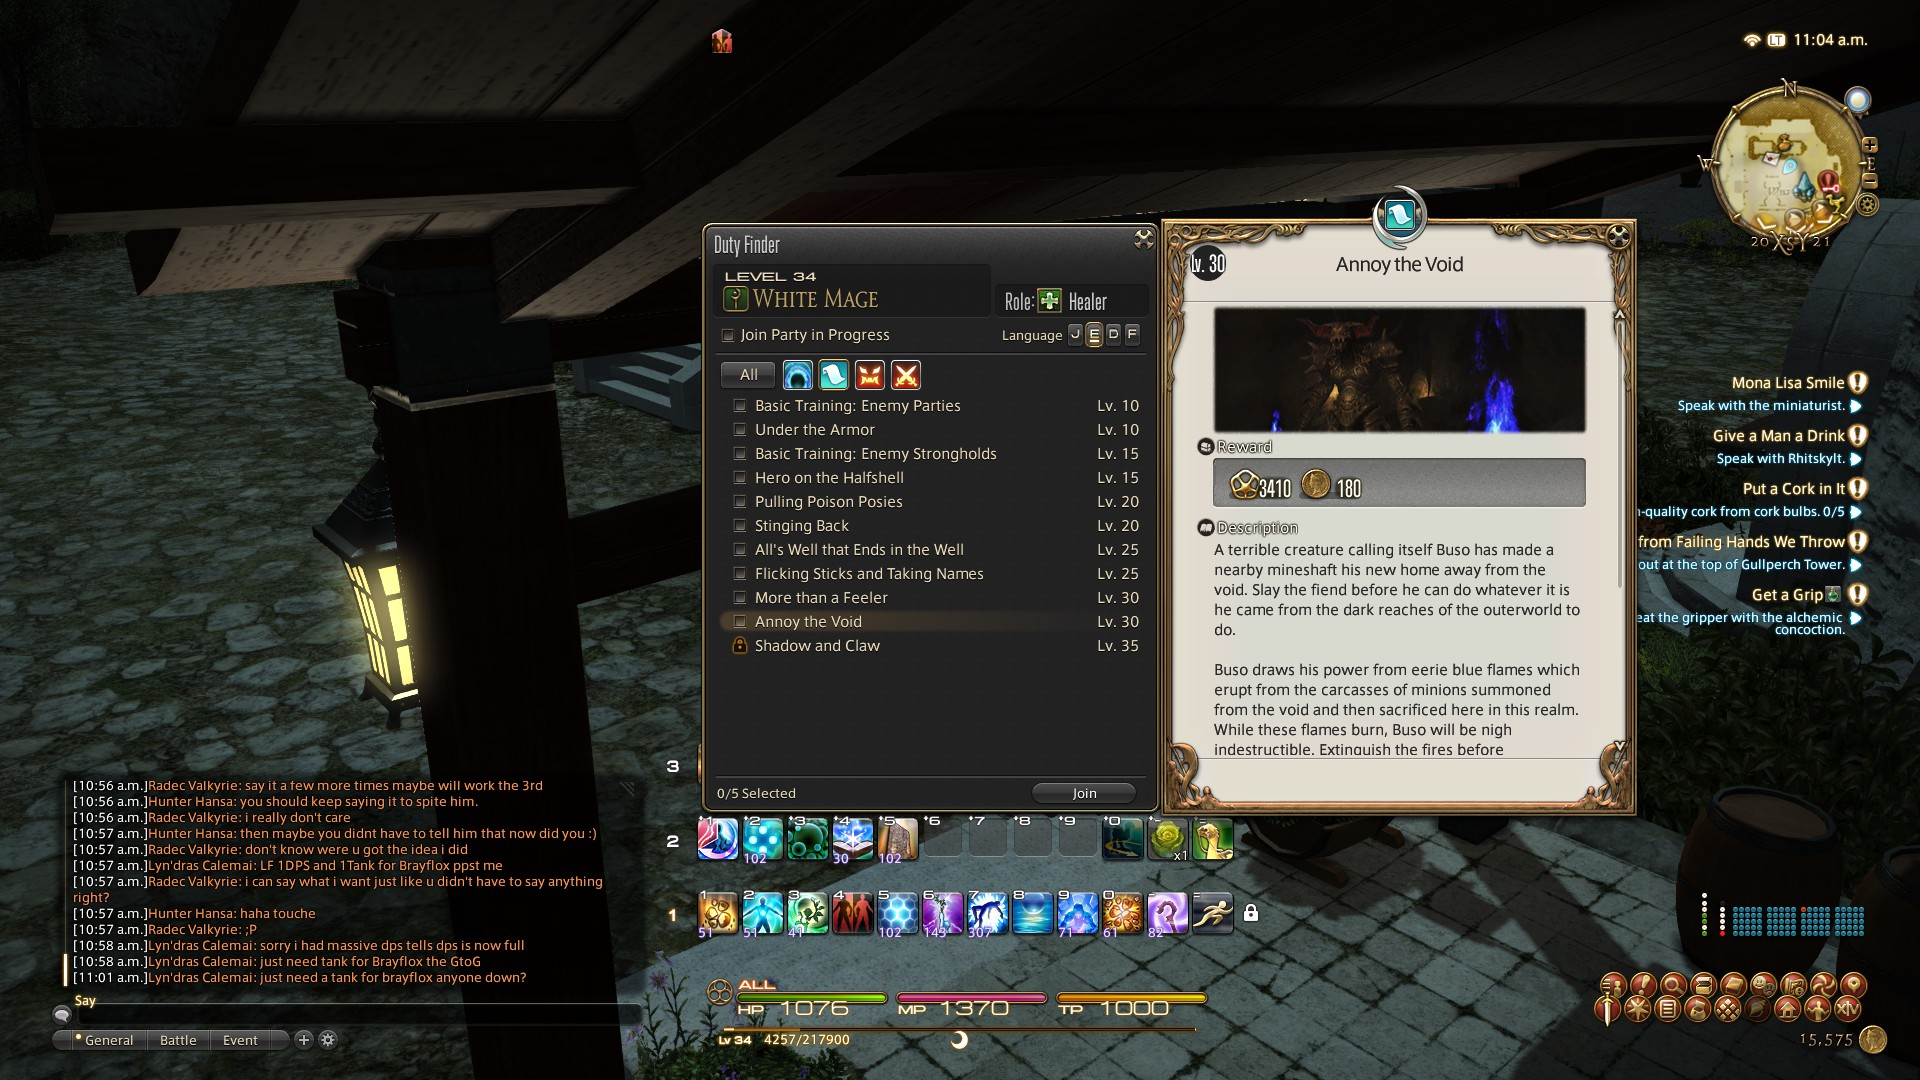 Review: Final Fantasy XIV: A Realm Reborn Journal (**** stars)